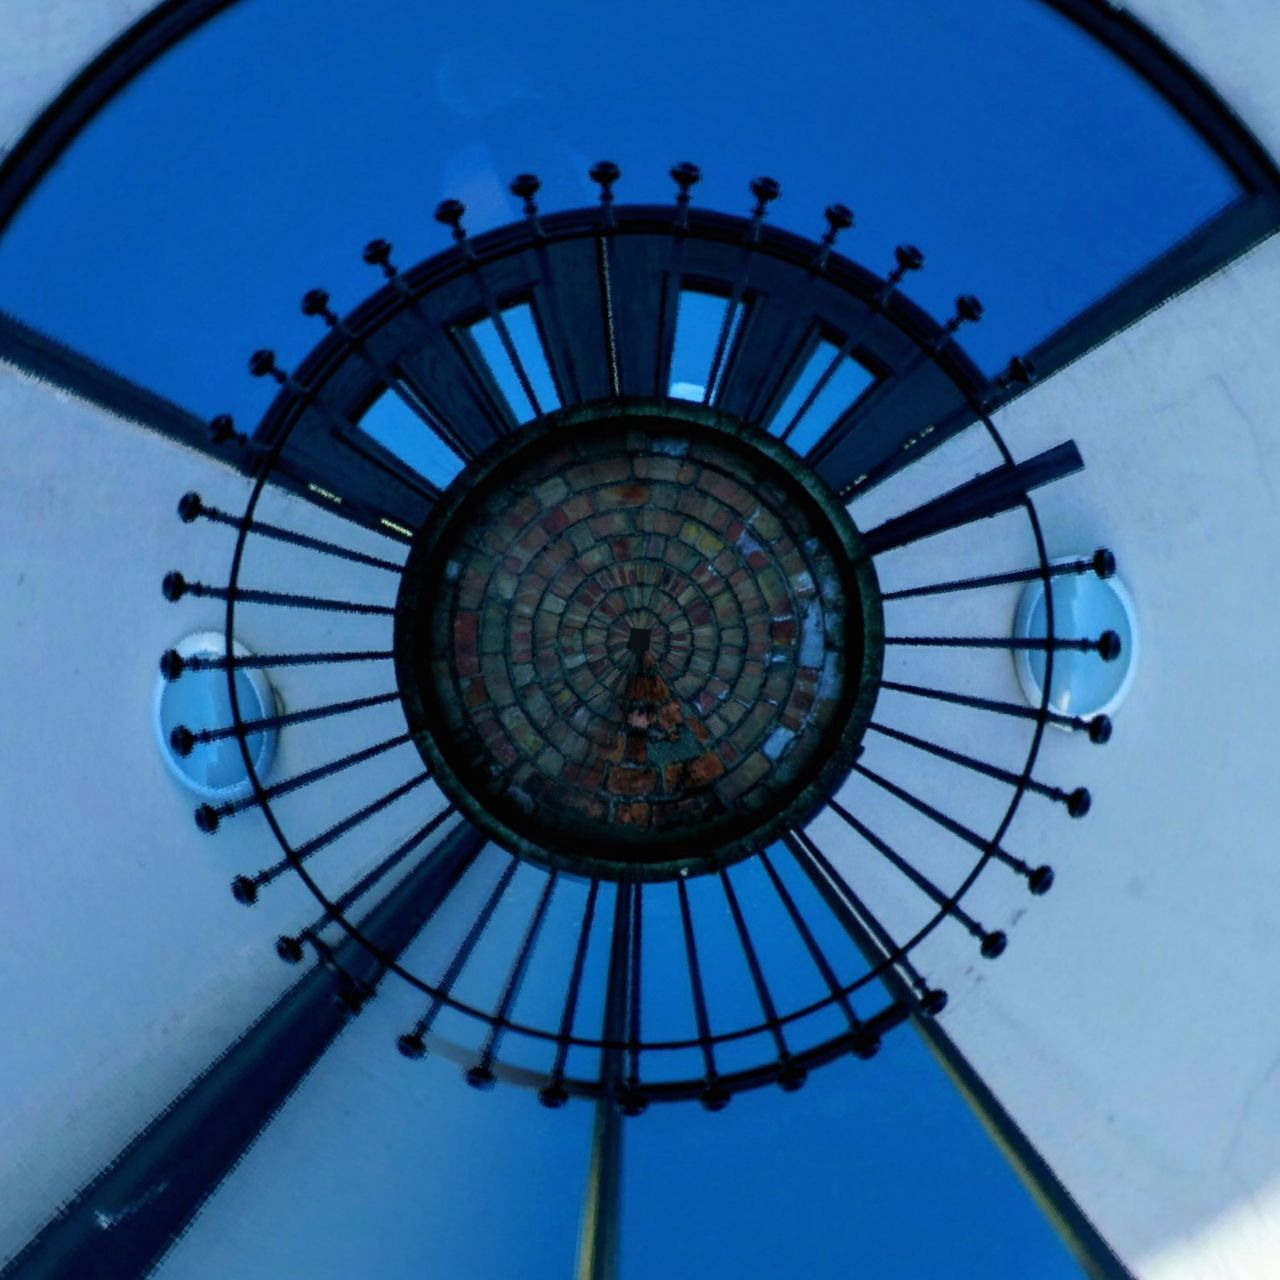 I've often had a go at a 'tiny planet' but not had much success But I really like the way these Railings have formed the clock effect Blue Sky Building Exterior Distorted Image Outdoors Day Patterns & Textures Showcase December Finding New Frontiers Sunny Day Tinyplanets Clockwise